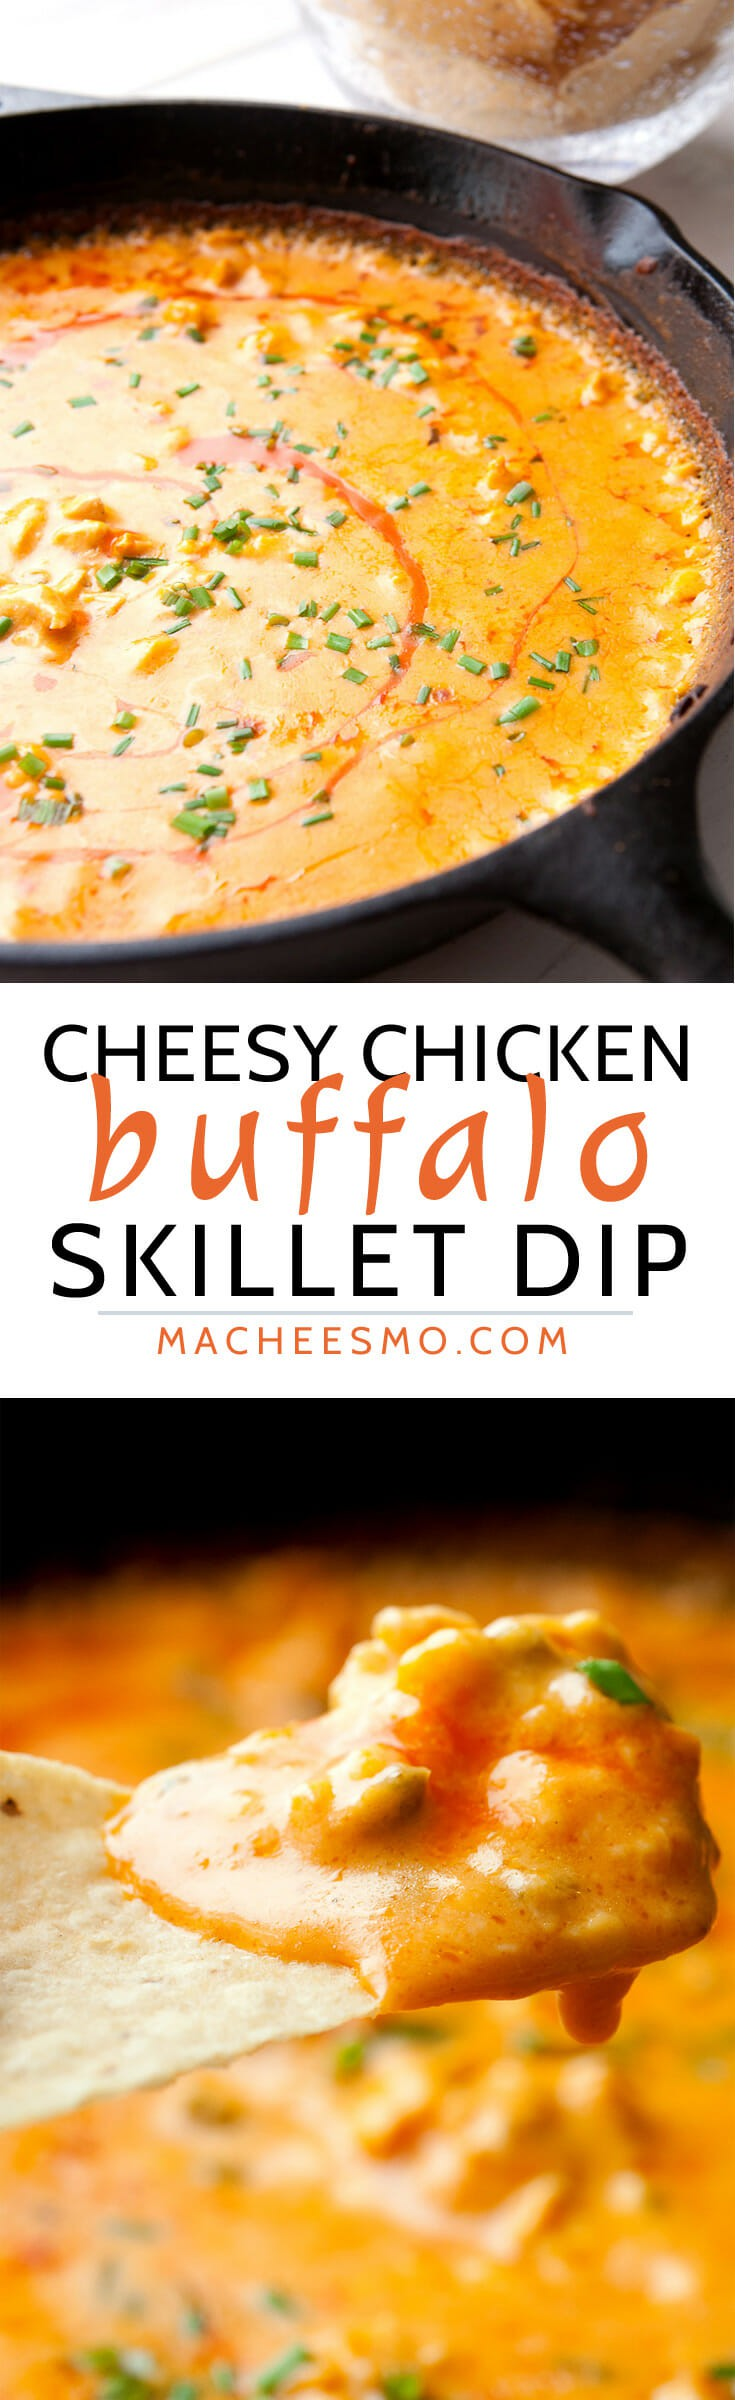 Cheesy Buffalo Chicken Dip baked in a skillet! This is a surprisingly easy dip made with real cheese and baked until piping hot. So addictive and always a crowd pleaser! | macheesmo.com